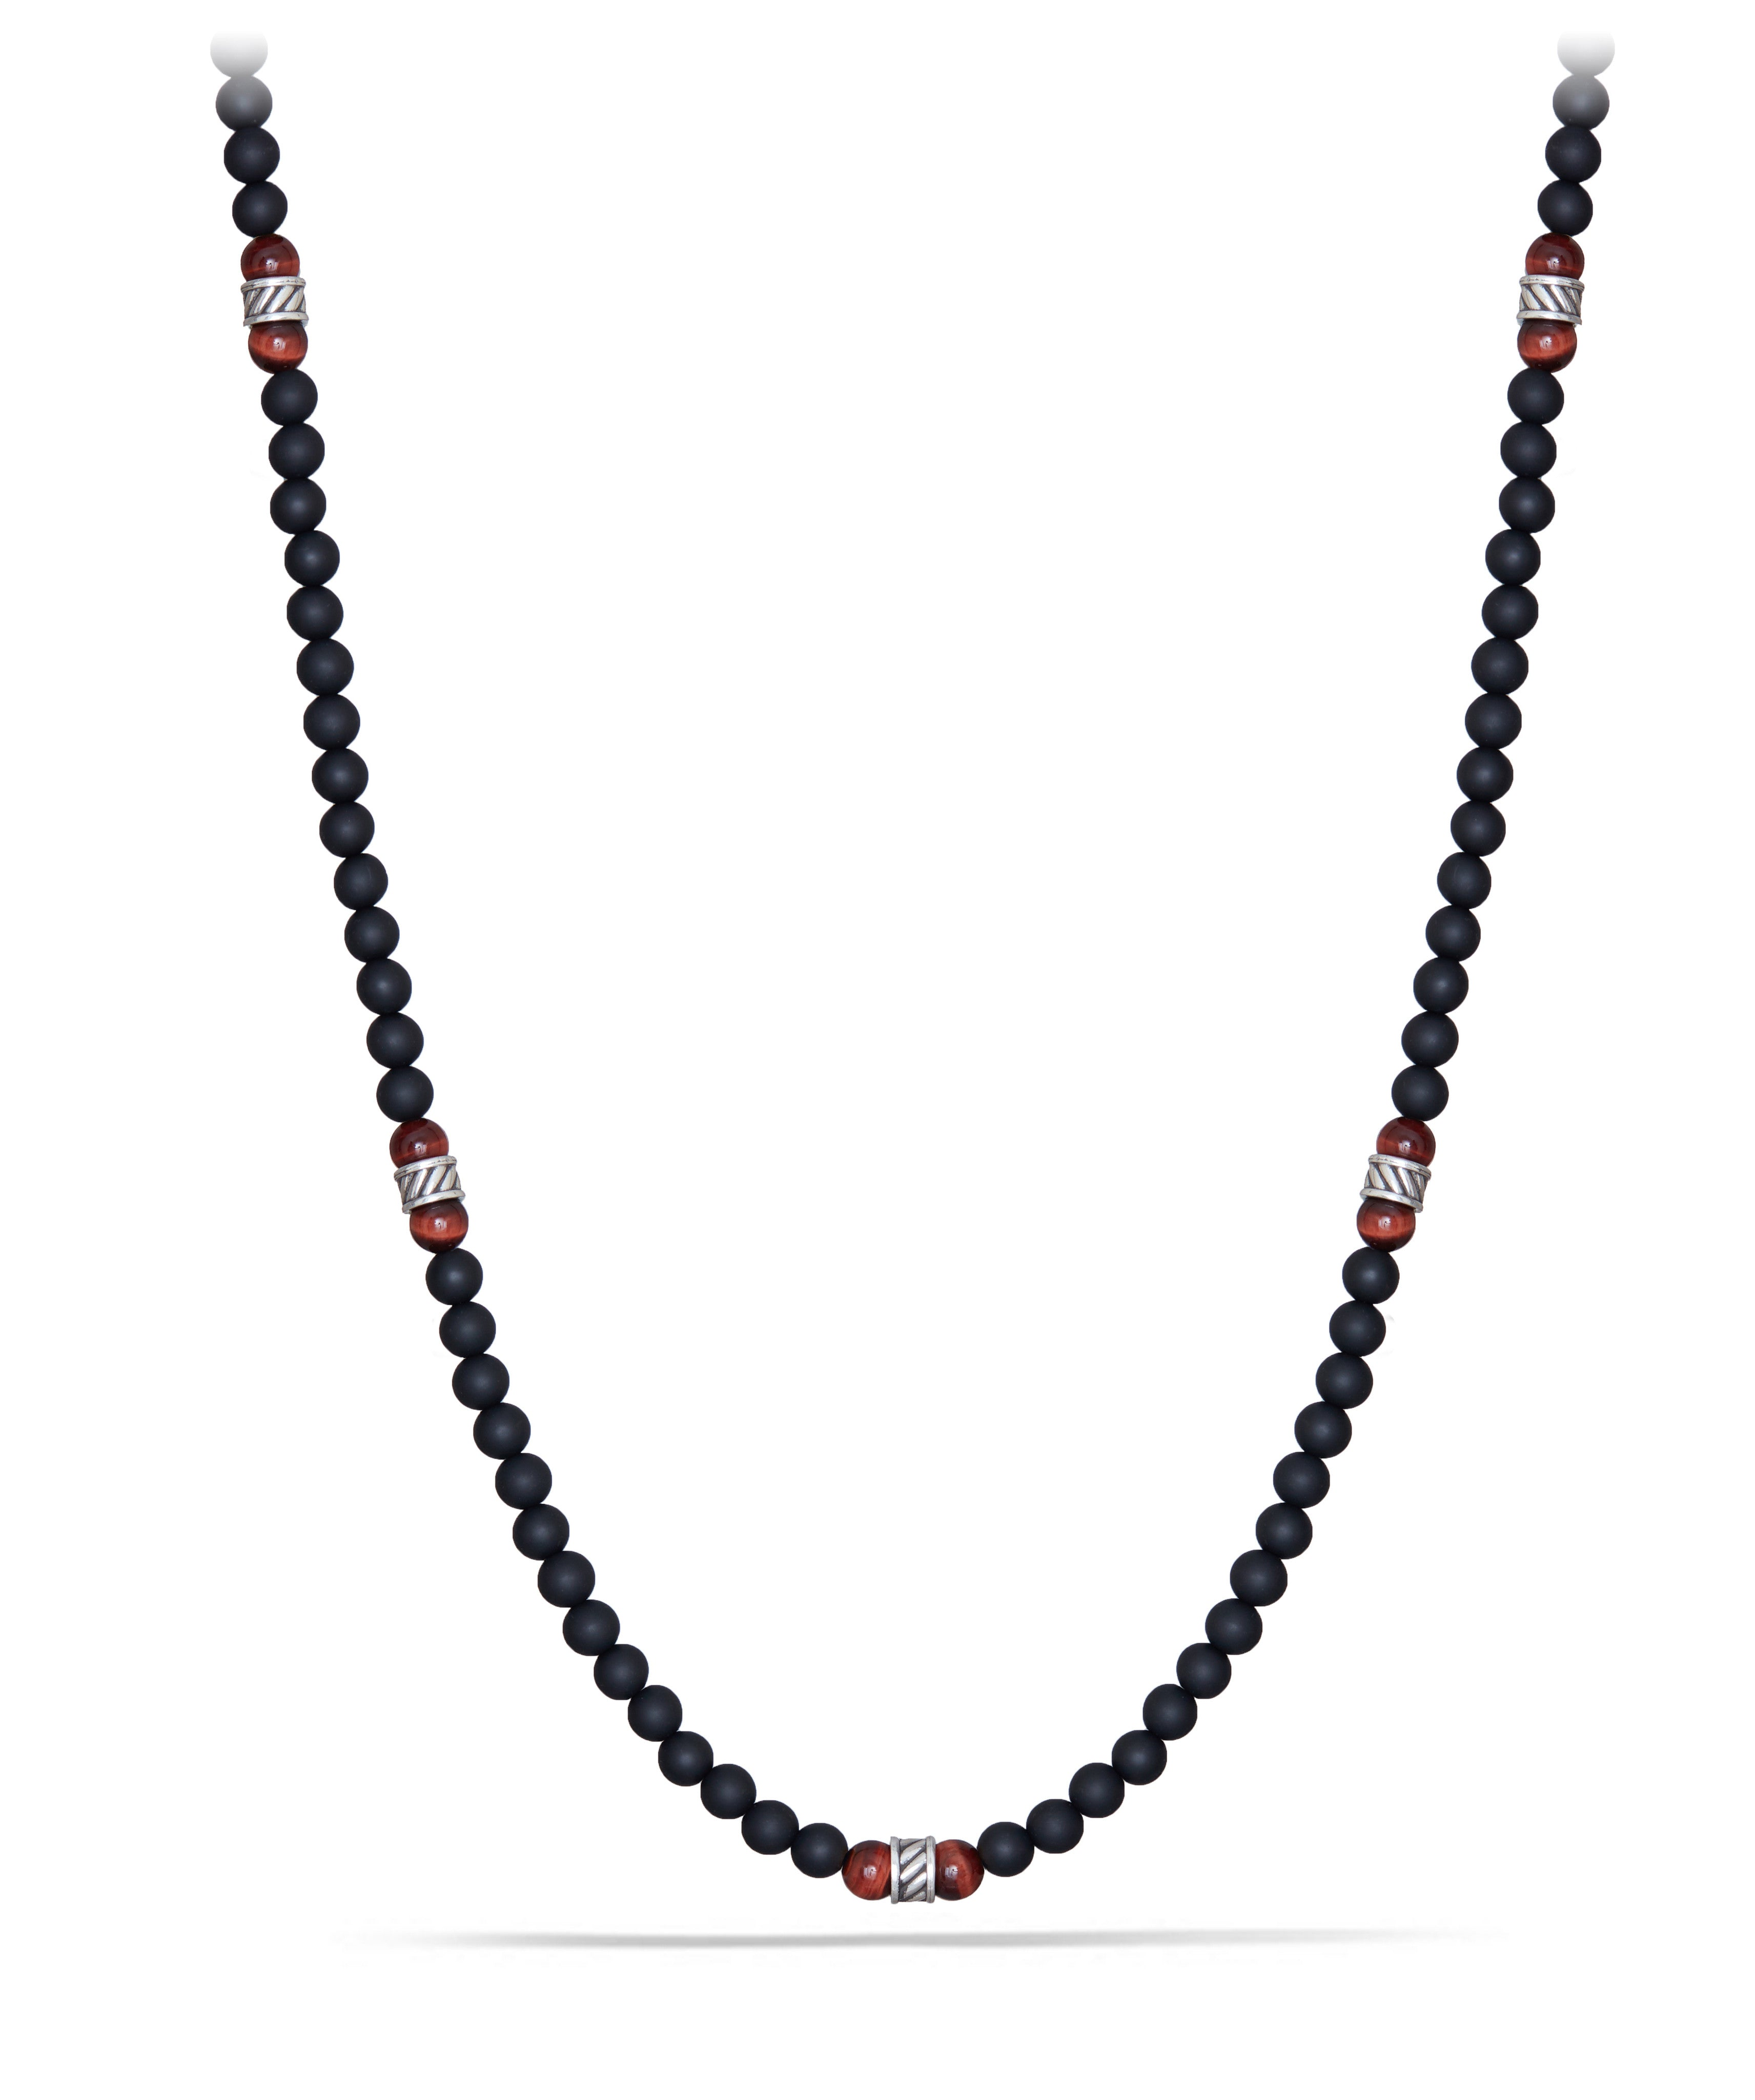 Spiritual Necklace with Forza, Red Tiger's Eye and Black Onyx